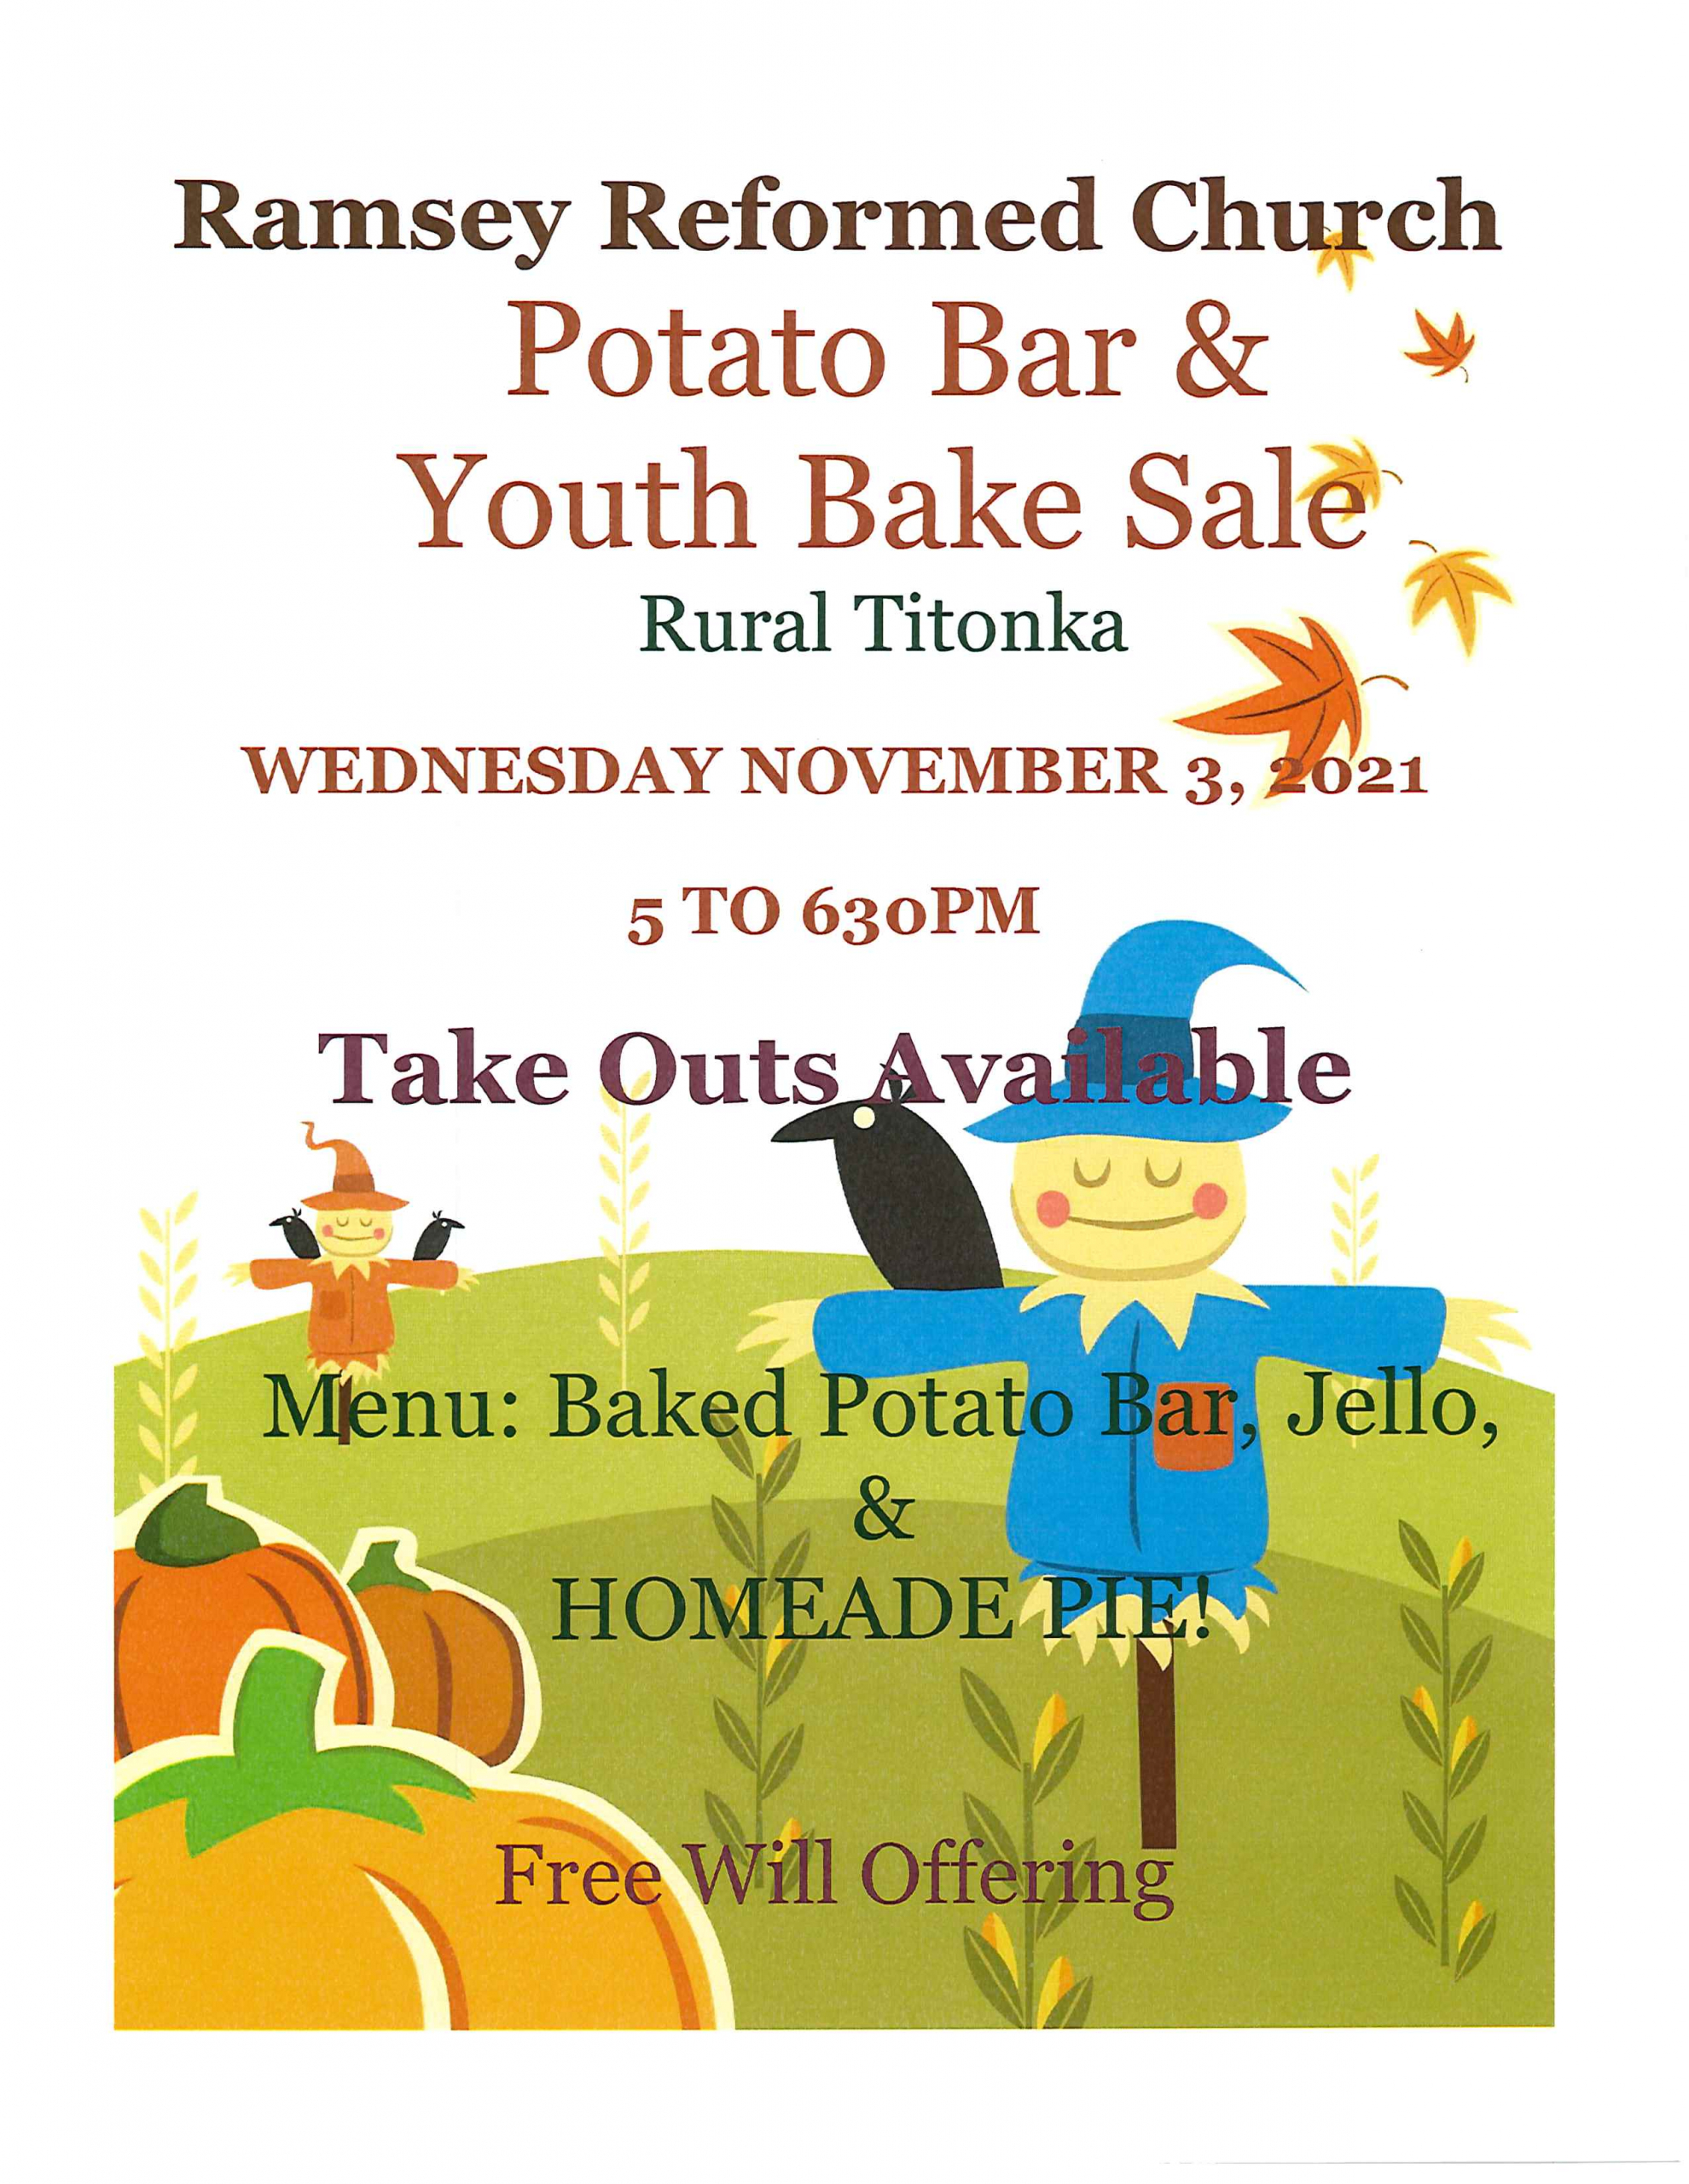 Ramsey Reformed Church Potato Bar and Youth Bake Sale